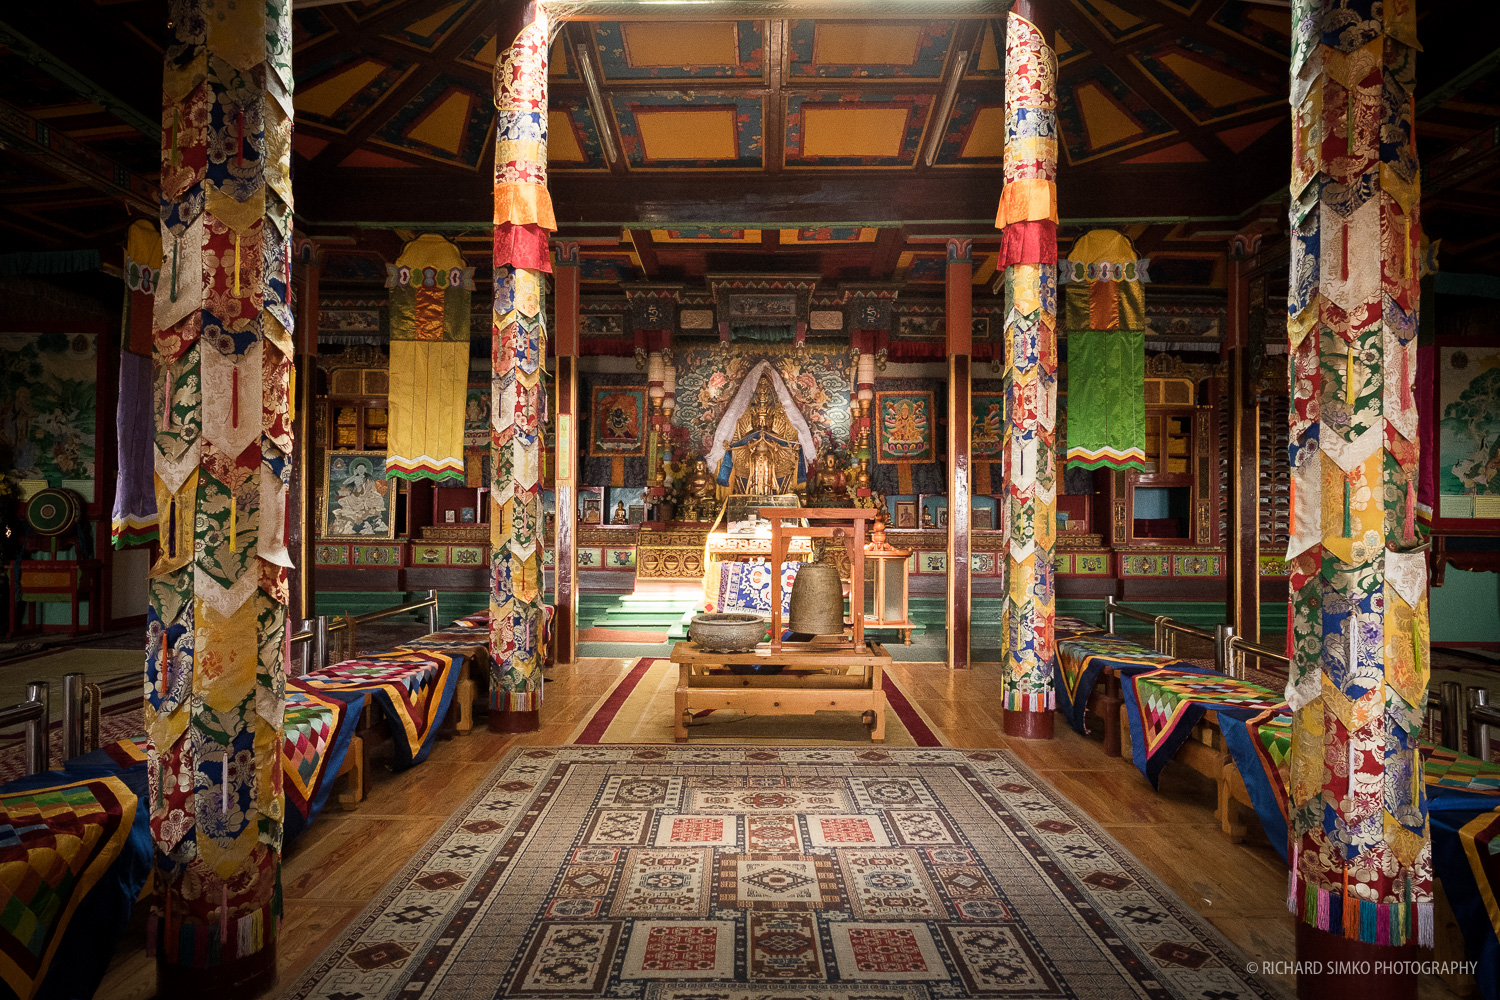 Inside the Buddhist Monastery located in Terelj National Park.